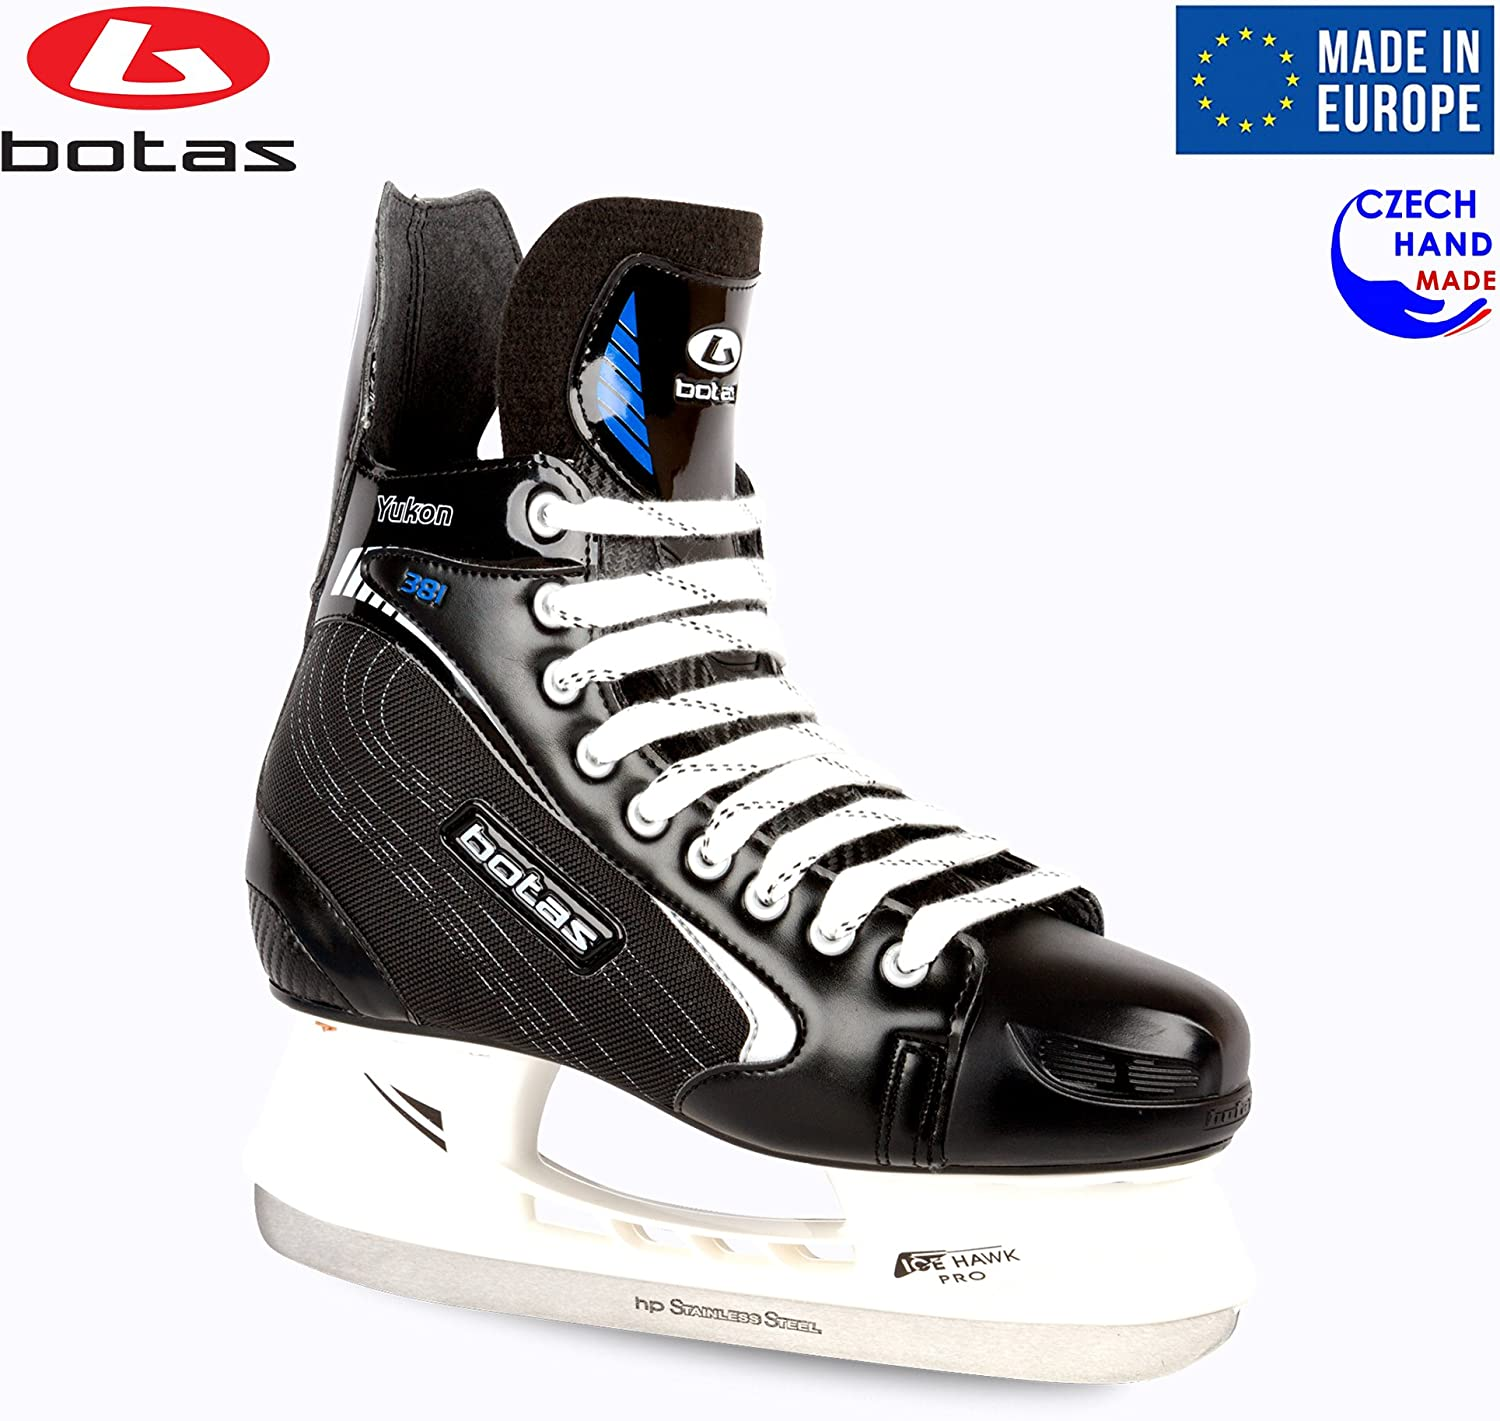 Botas – Yukon 381 – Men s Ice Hockey Skates Made in Europe Czech Republic Color Black with Silver